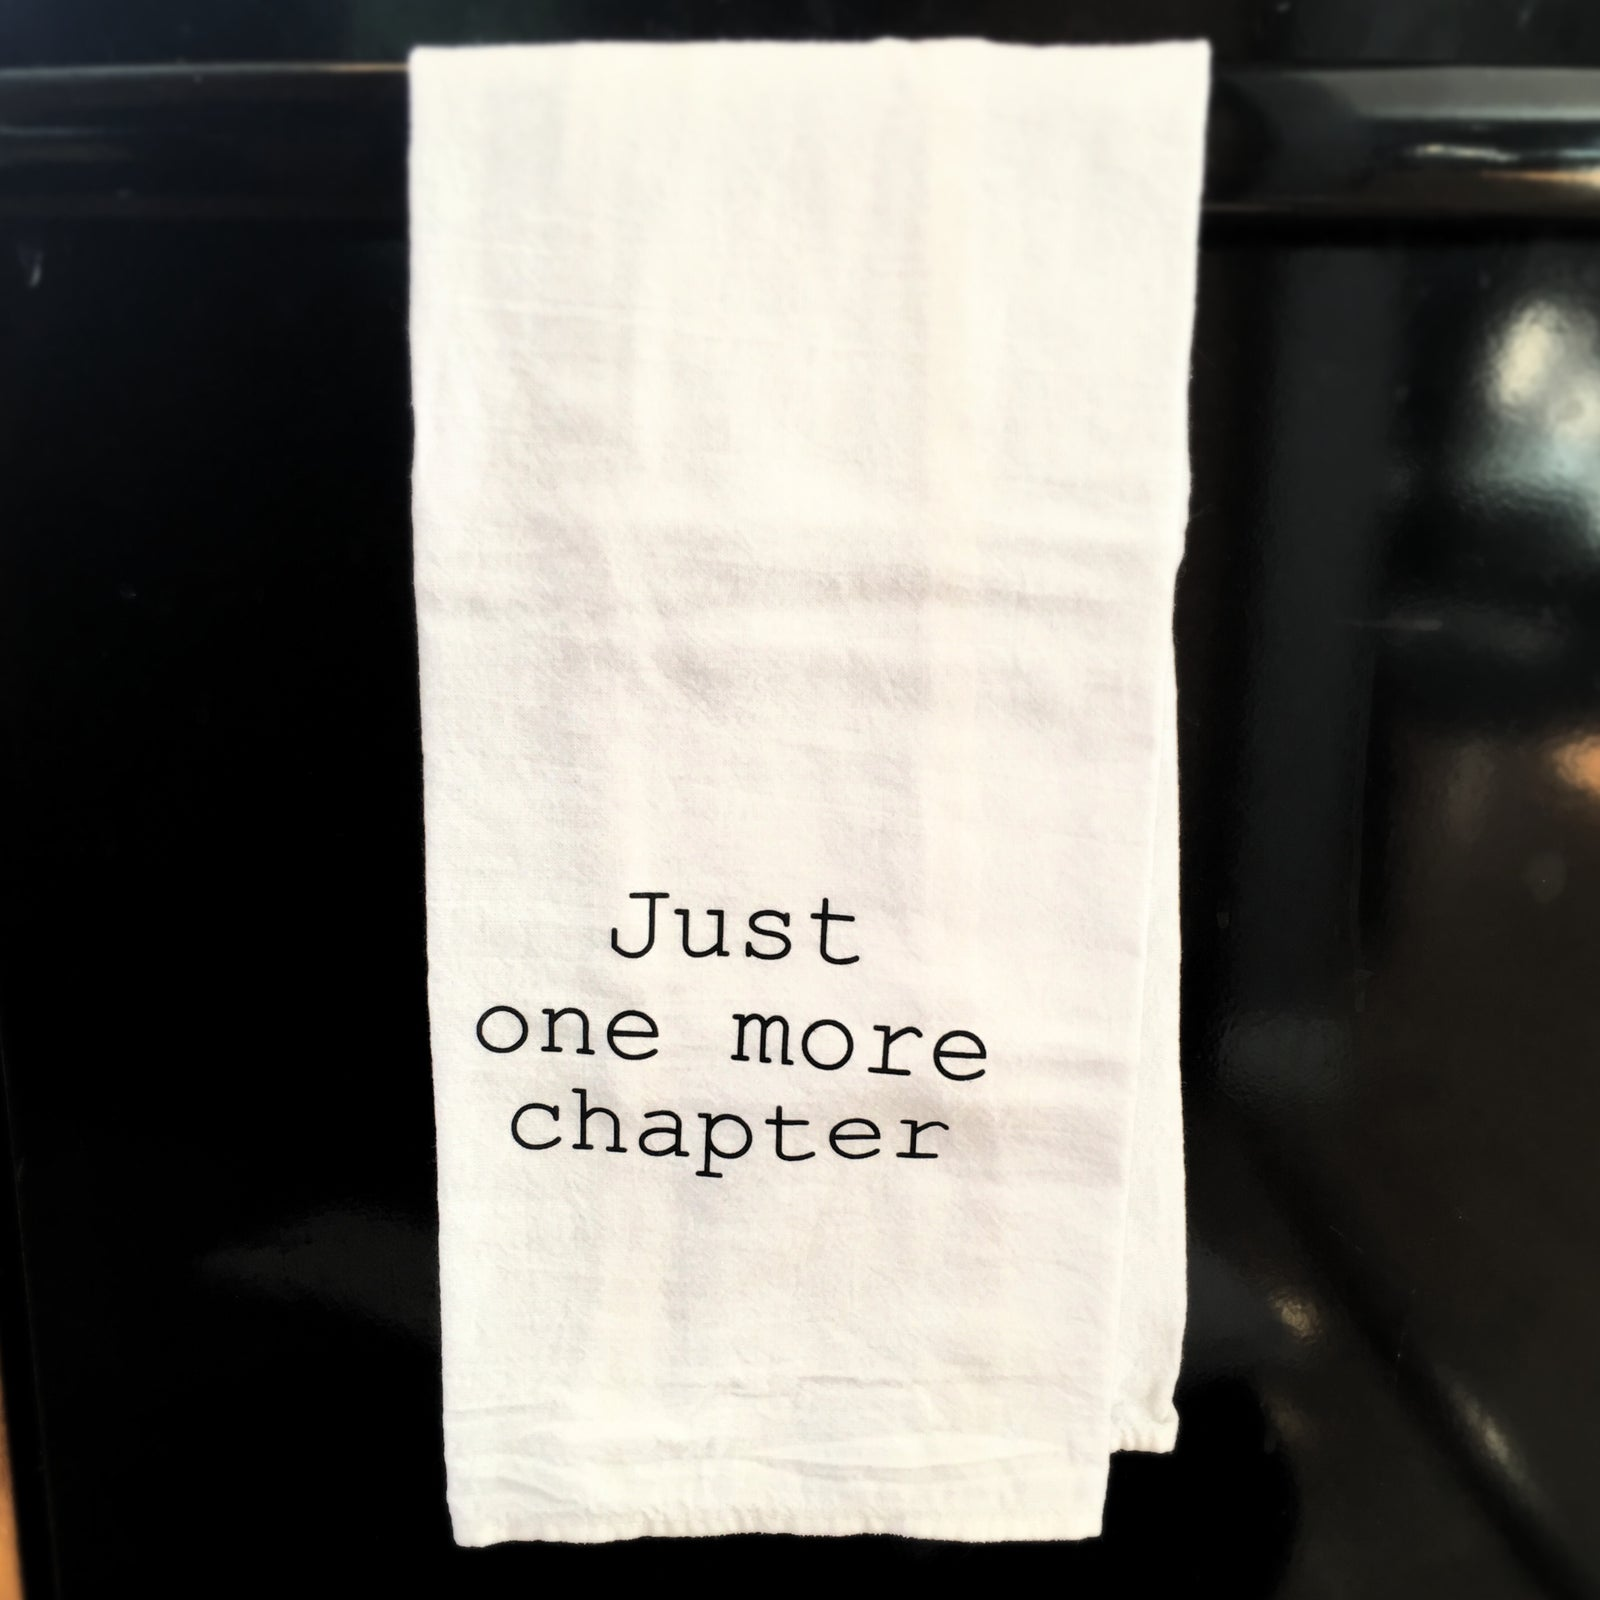 Towel: Just one more chapter